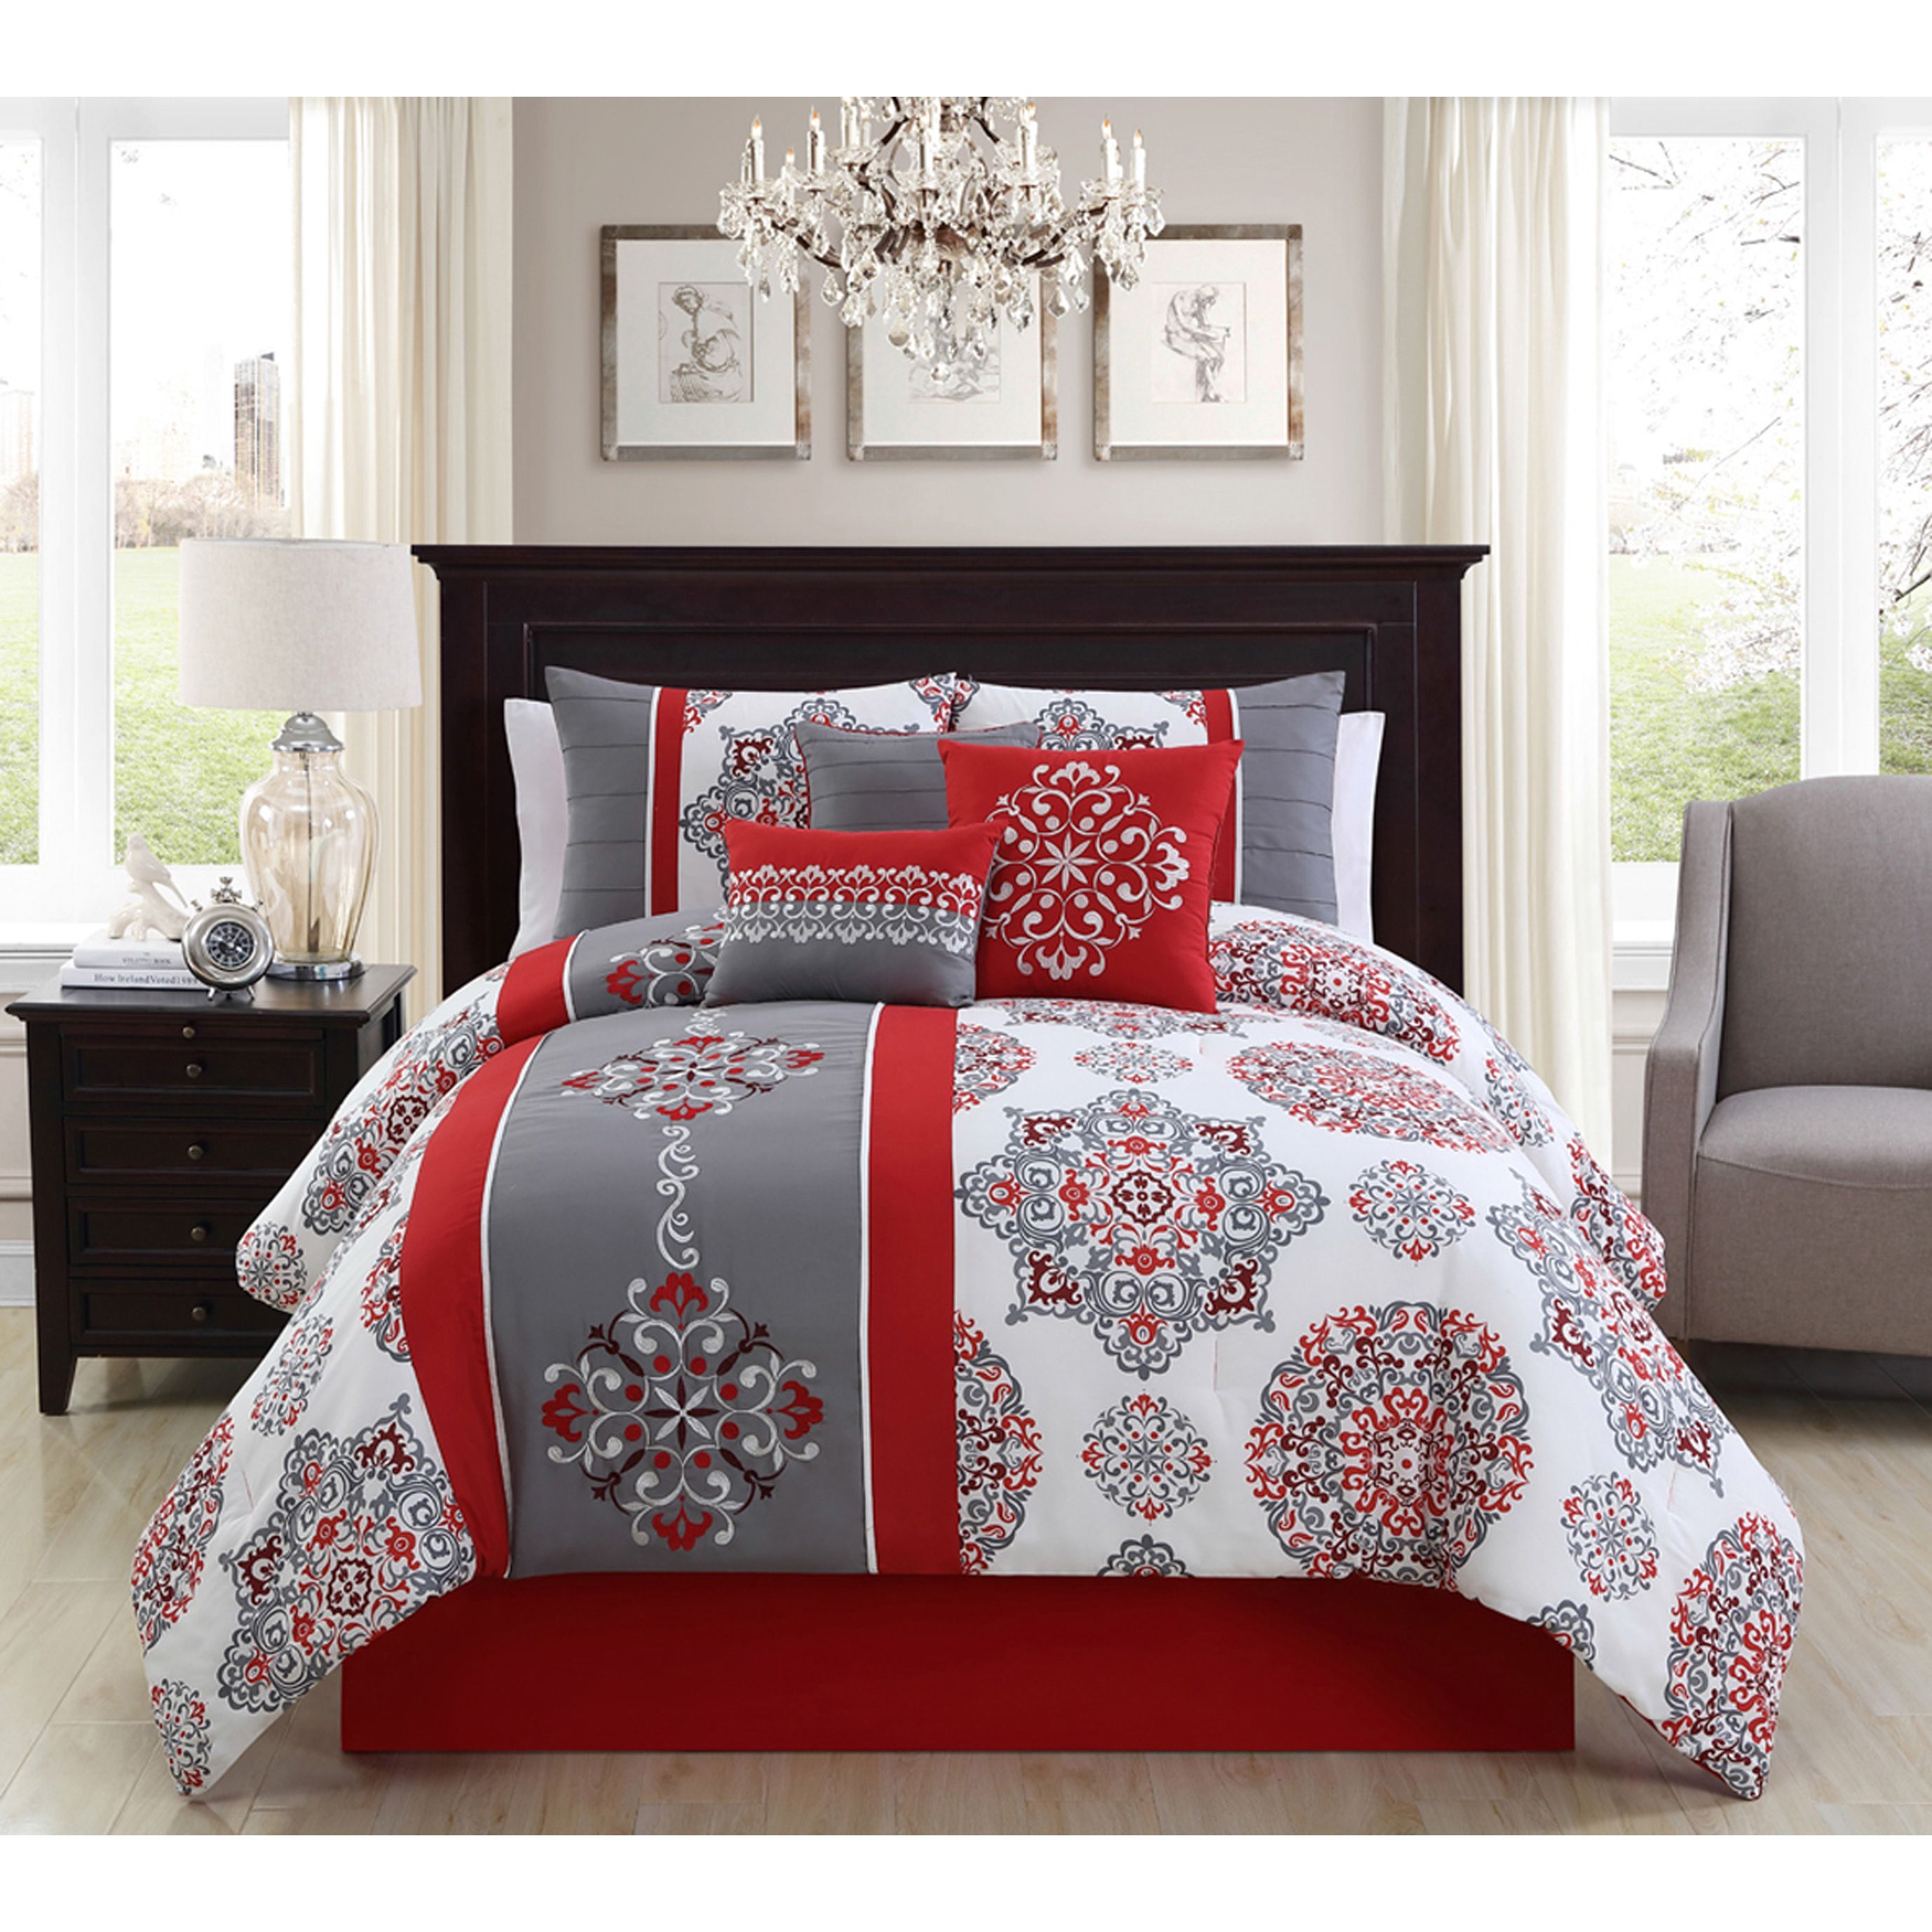 Roxy beach bedding - Purple Red Comforter Sets Free Shipping On Orders Over 45 Bring The Comfort